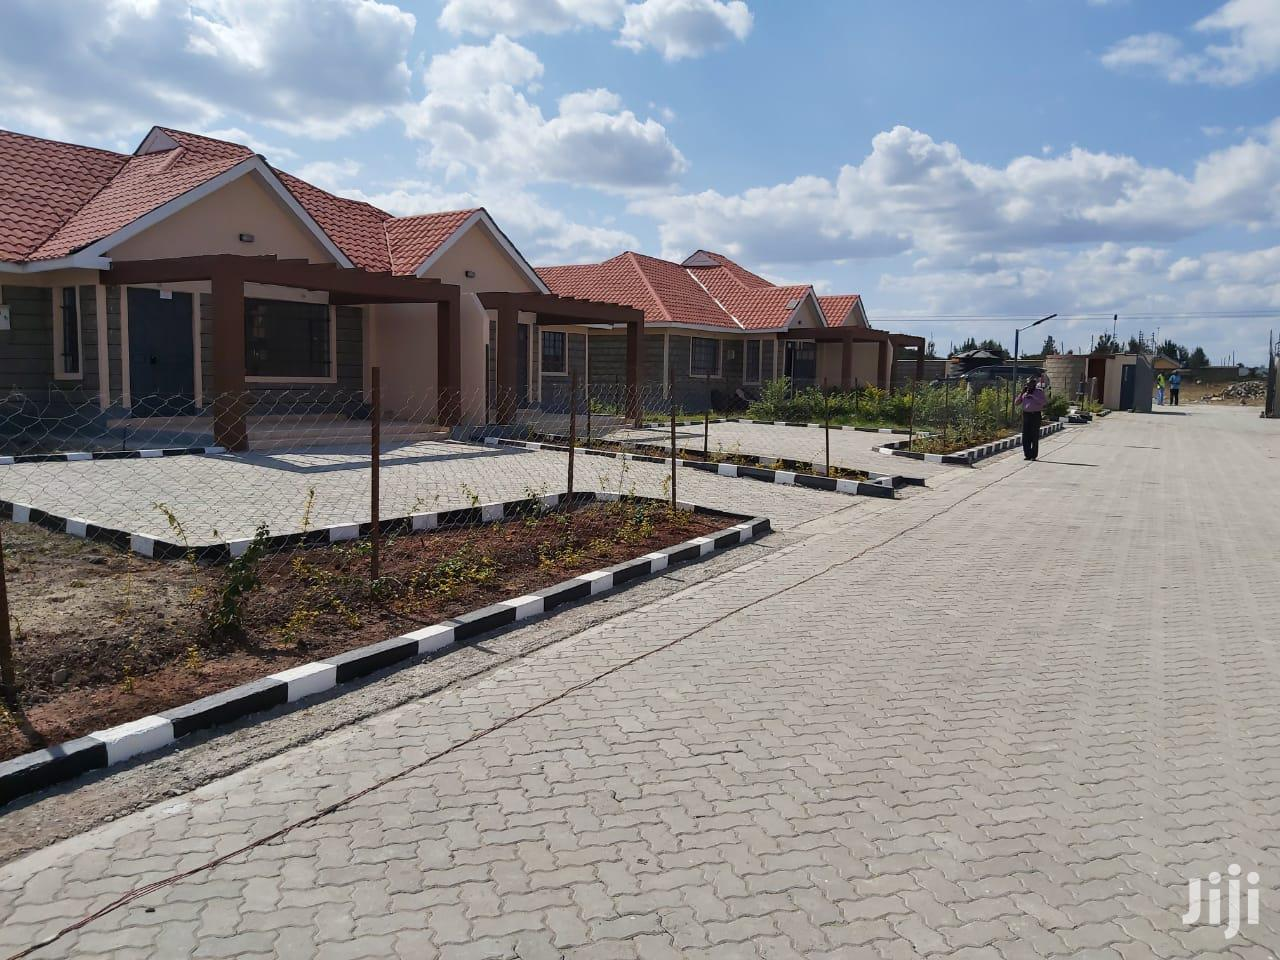 3 Bedroom Bungalows Master Ensuite Sitting On 1/8 Acre Plots | Houses & Apartments For Sale for sale in Embakasi, Nairobi, Kenya